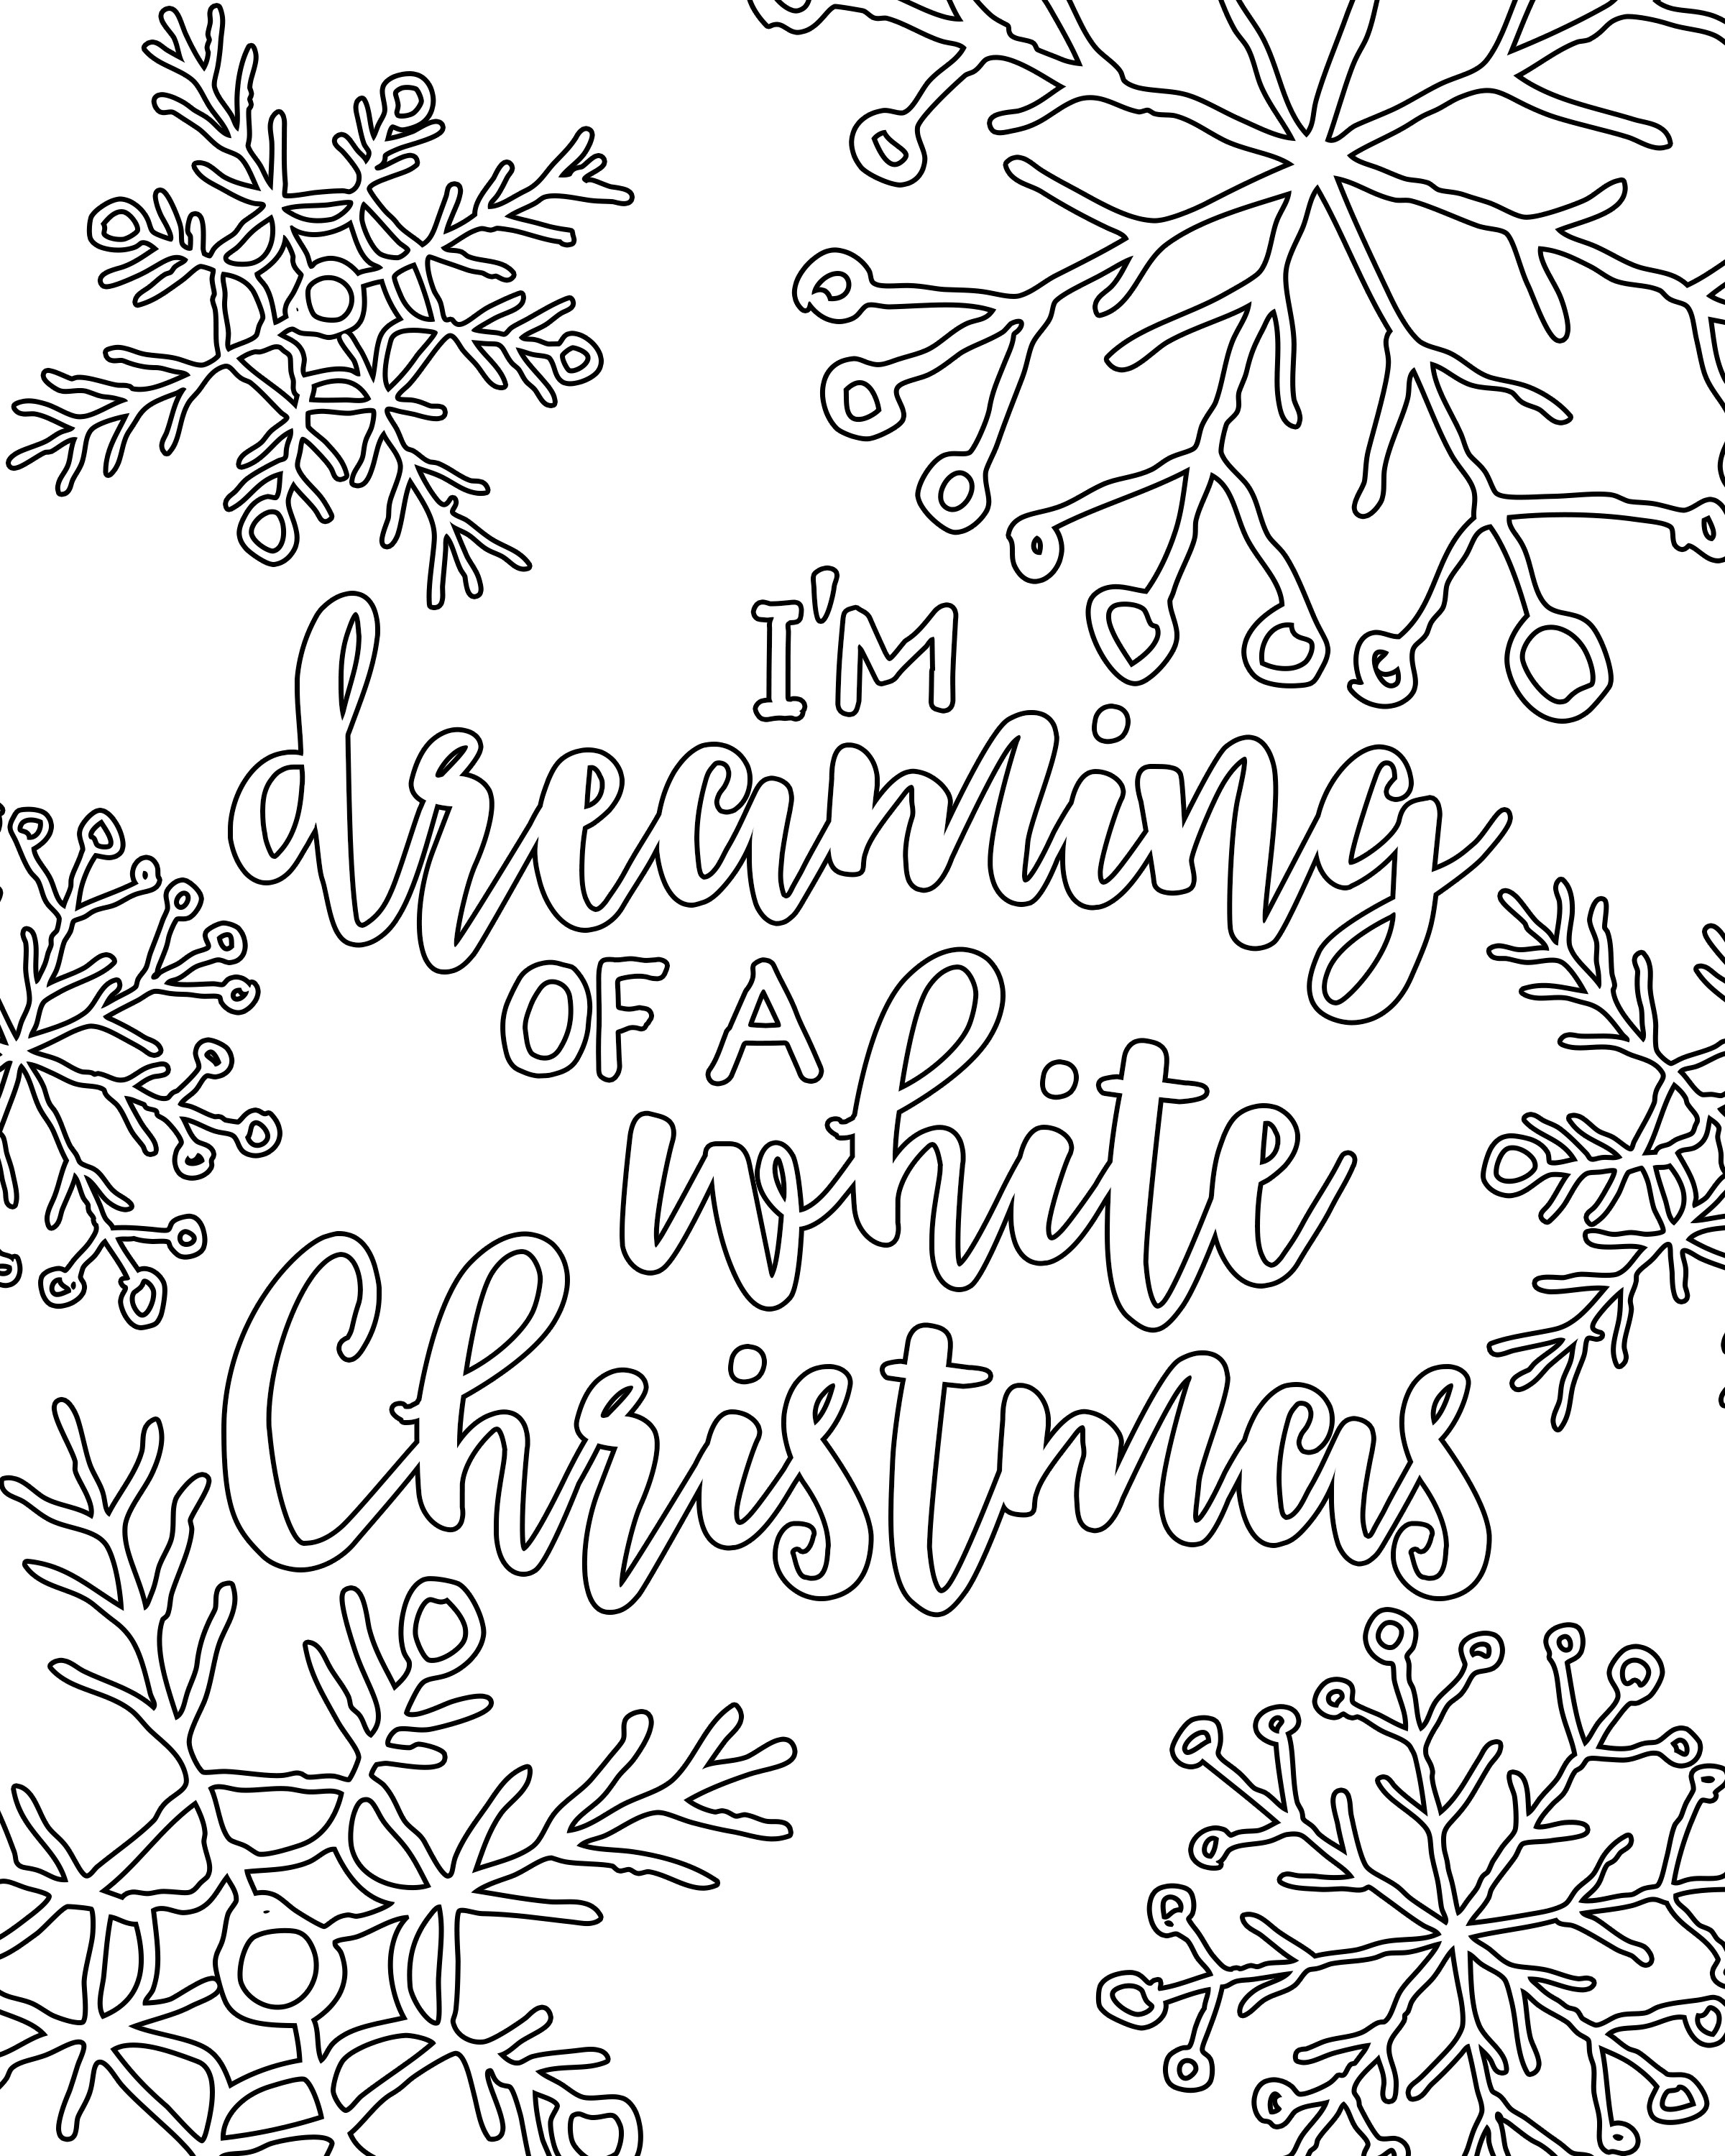 Free Printable White Christmas Adult Coloring Pages   Coloring Pages - Free Printable Christmas Coloring Pages